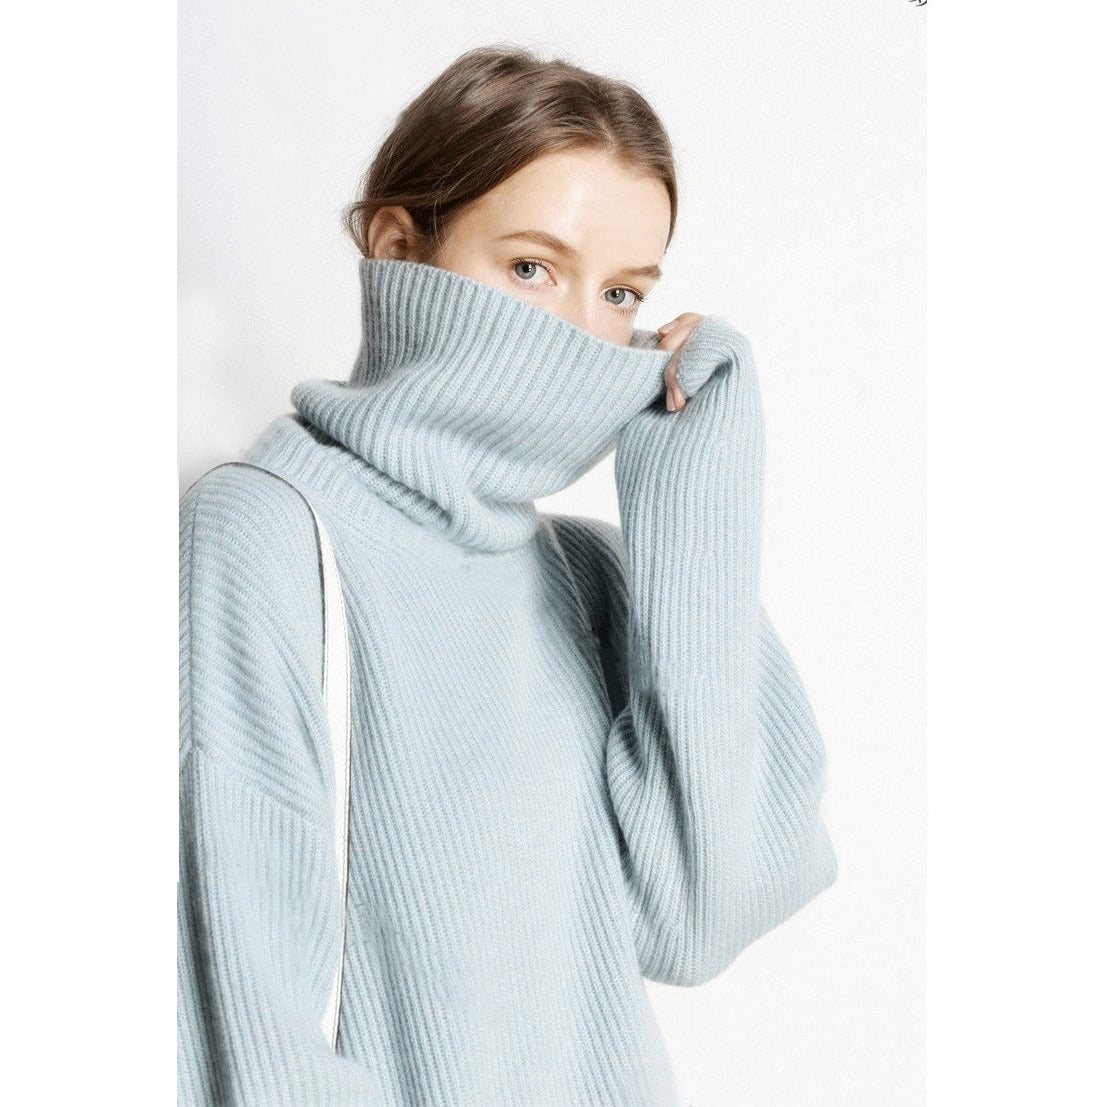 New Pure Cashmere Sweater High Collar Thick Pullover Winter Warm Female Soft Wild Sweater